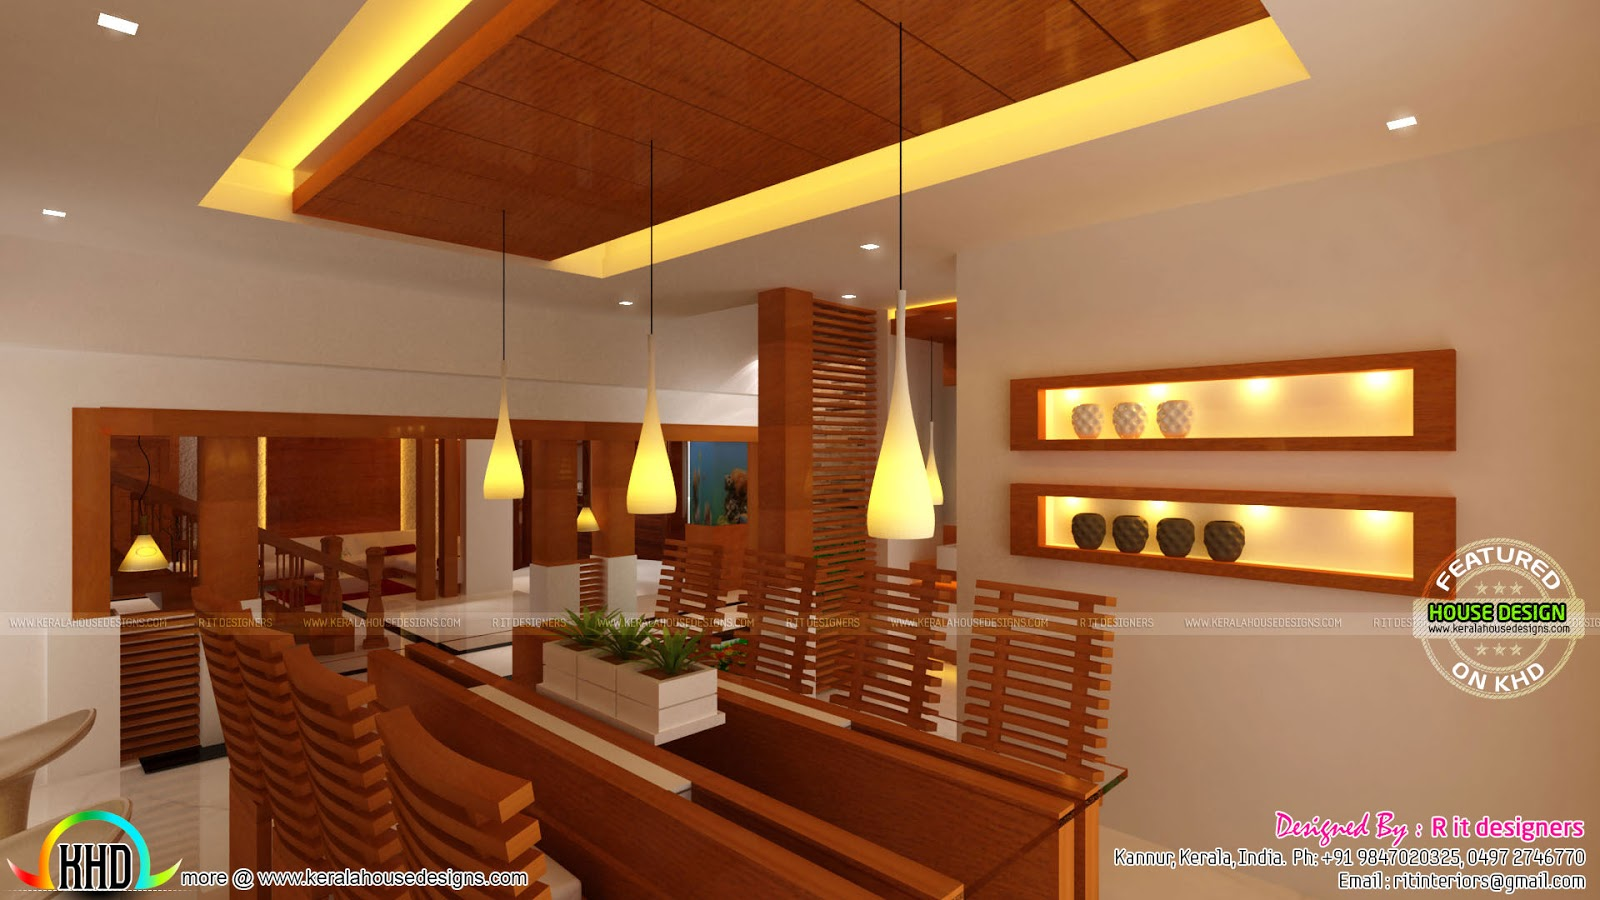 Wooden finish interior designs kerala home design and for Kerala home interior design ideas